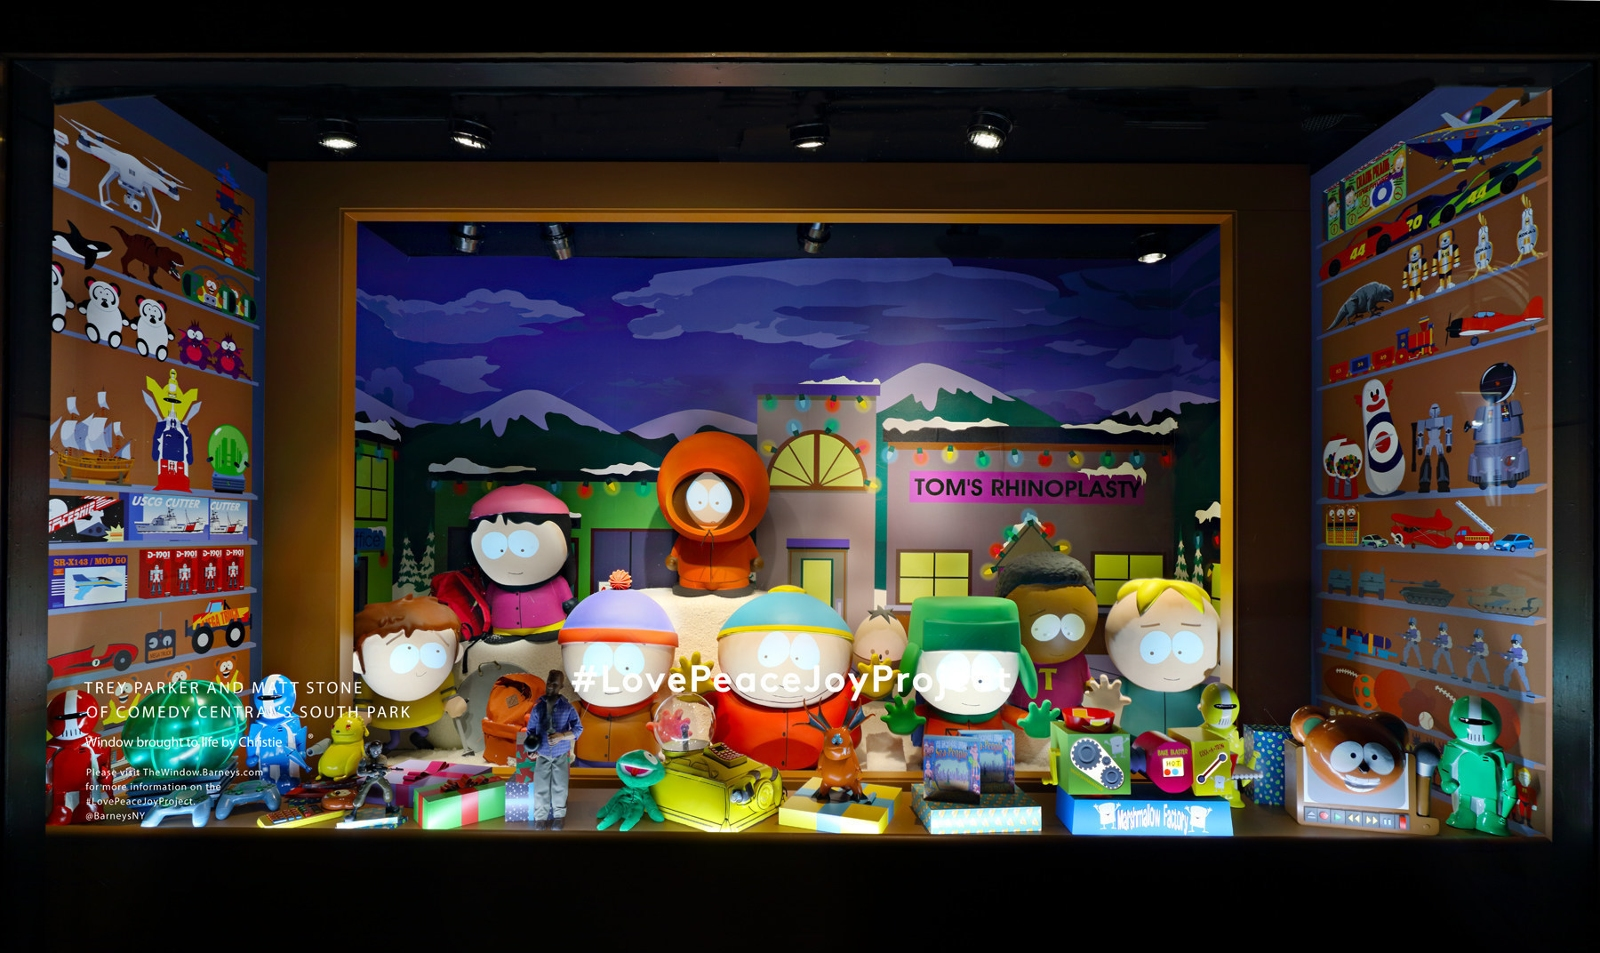 Barneys Barneys New York Madison Avenue Holiday Window Barneys New York Madison Avenue Holiday Window I Lobo youTrey Parker and Matt Stone of Comedy Centrals South Park